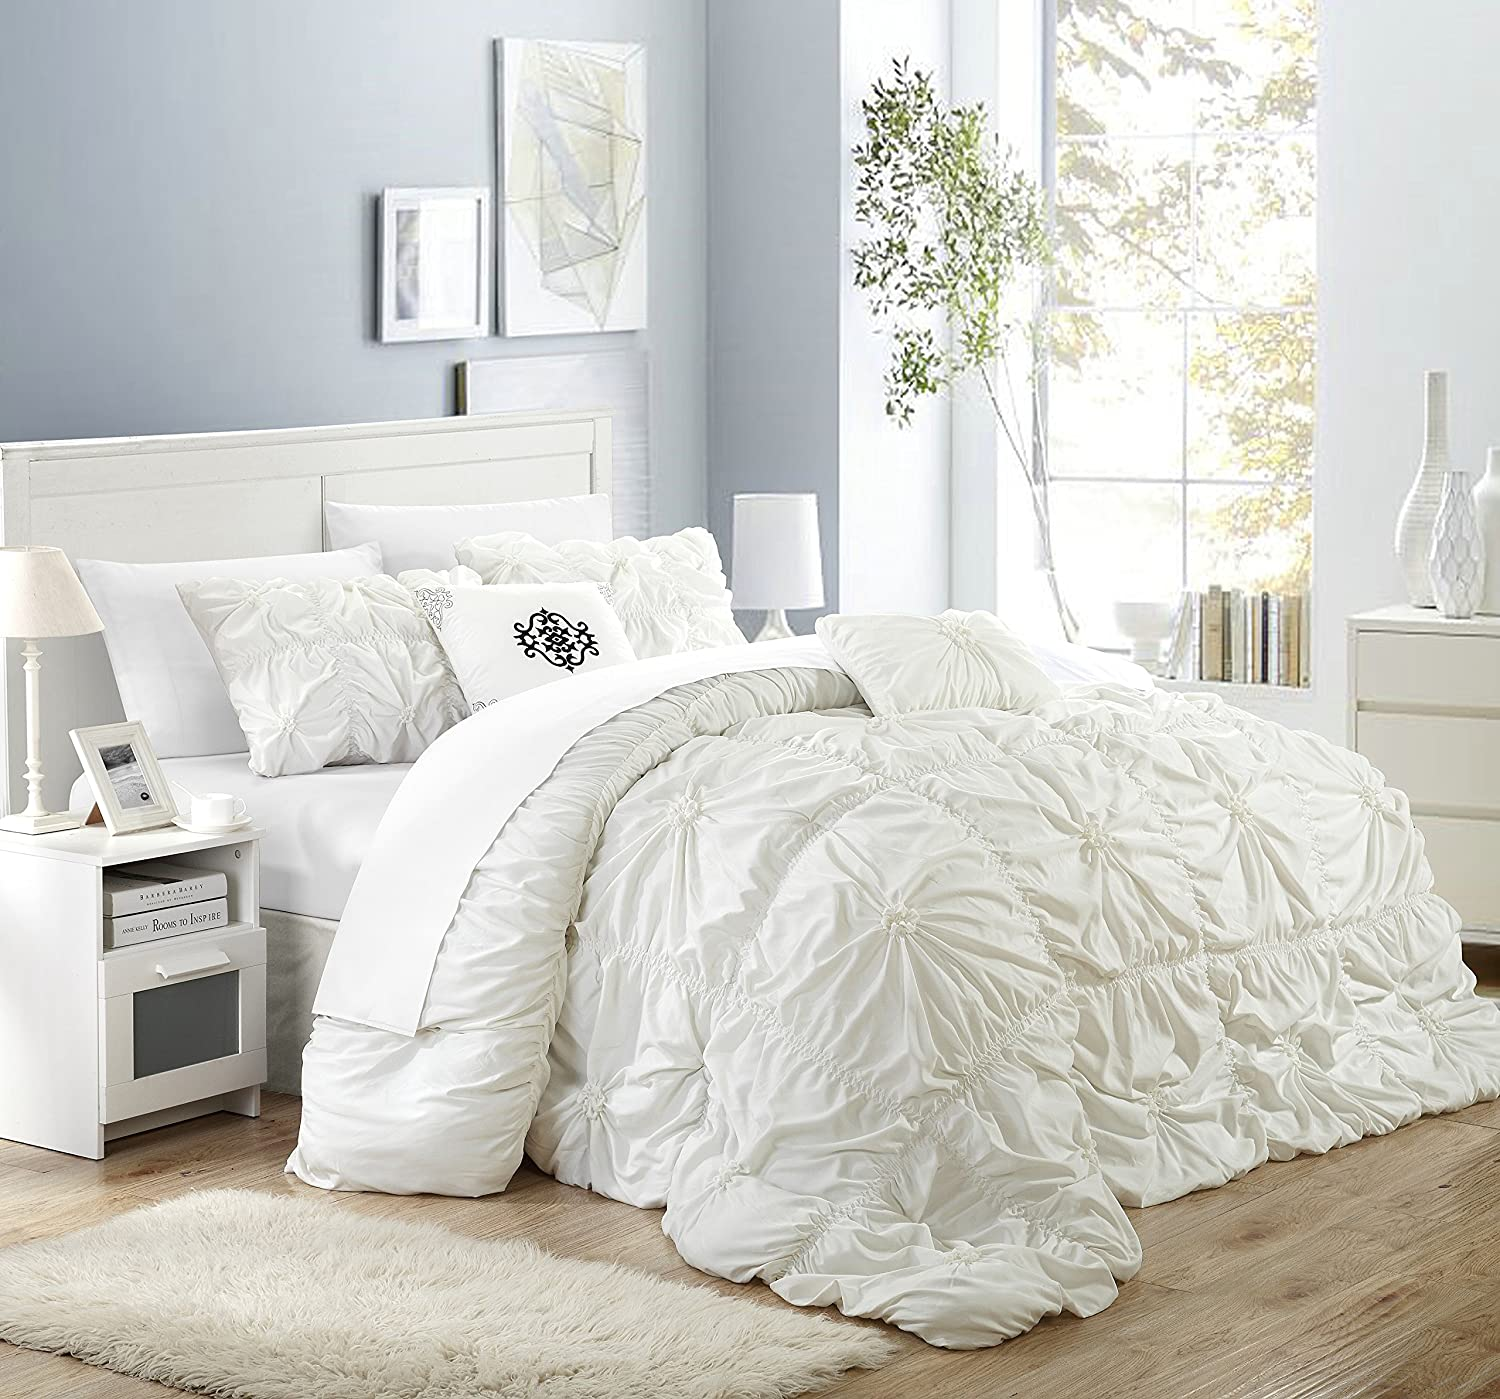 side comforters bedroom itm piece palmer park madison set sets ebay comforter natual